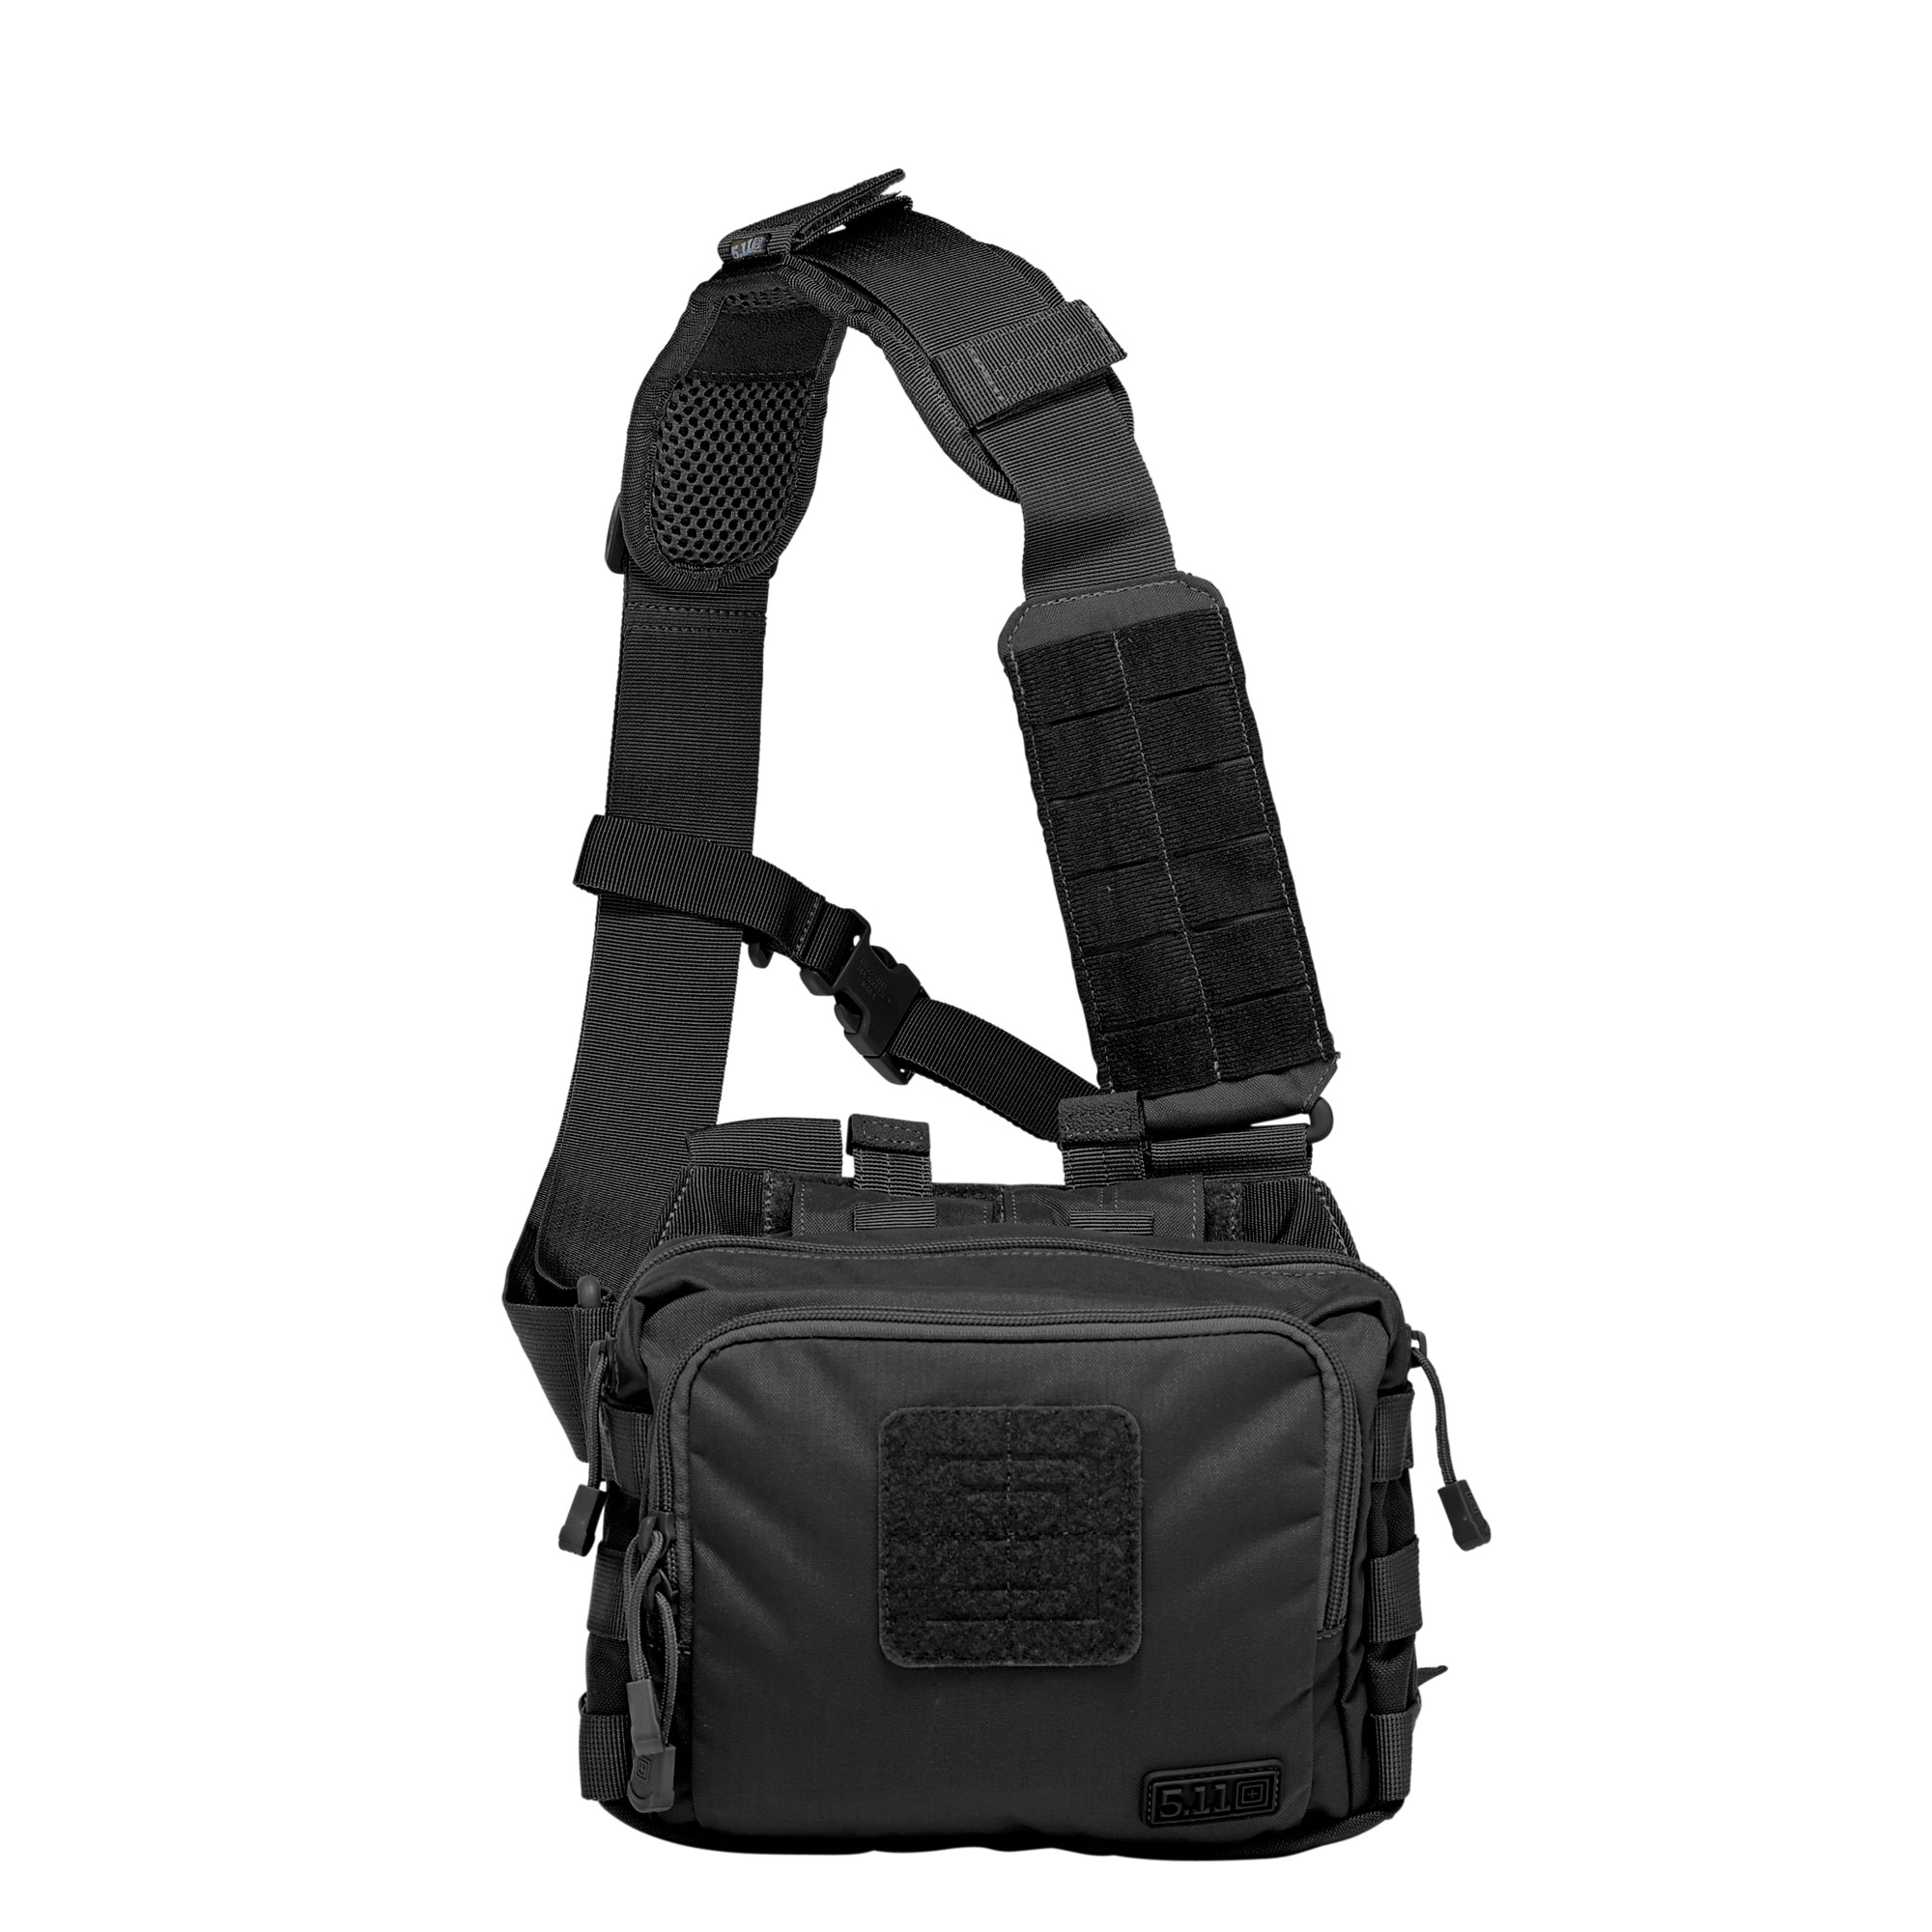 5.11 Tactical 2-Banger Bag (Black), (CCW Concealed Carry) thumbnail